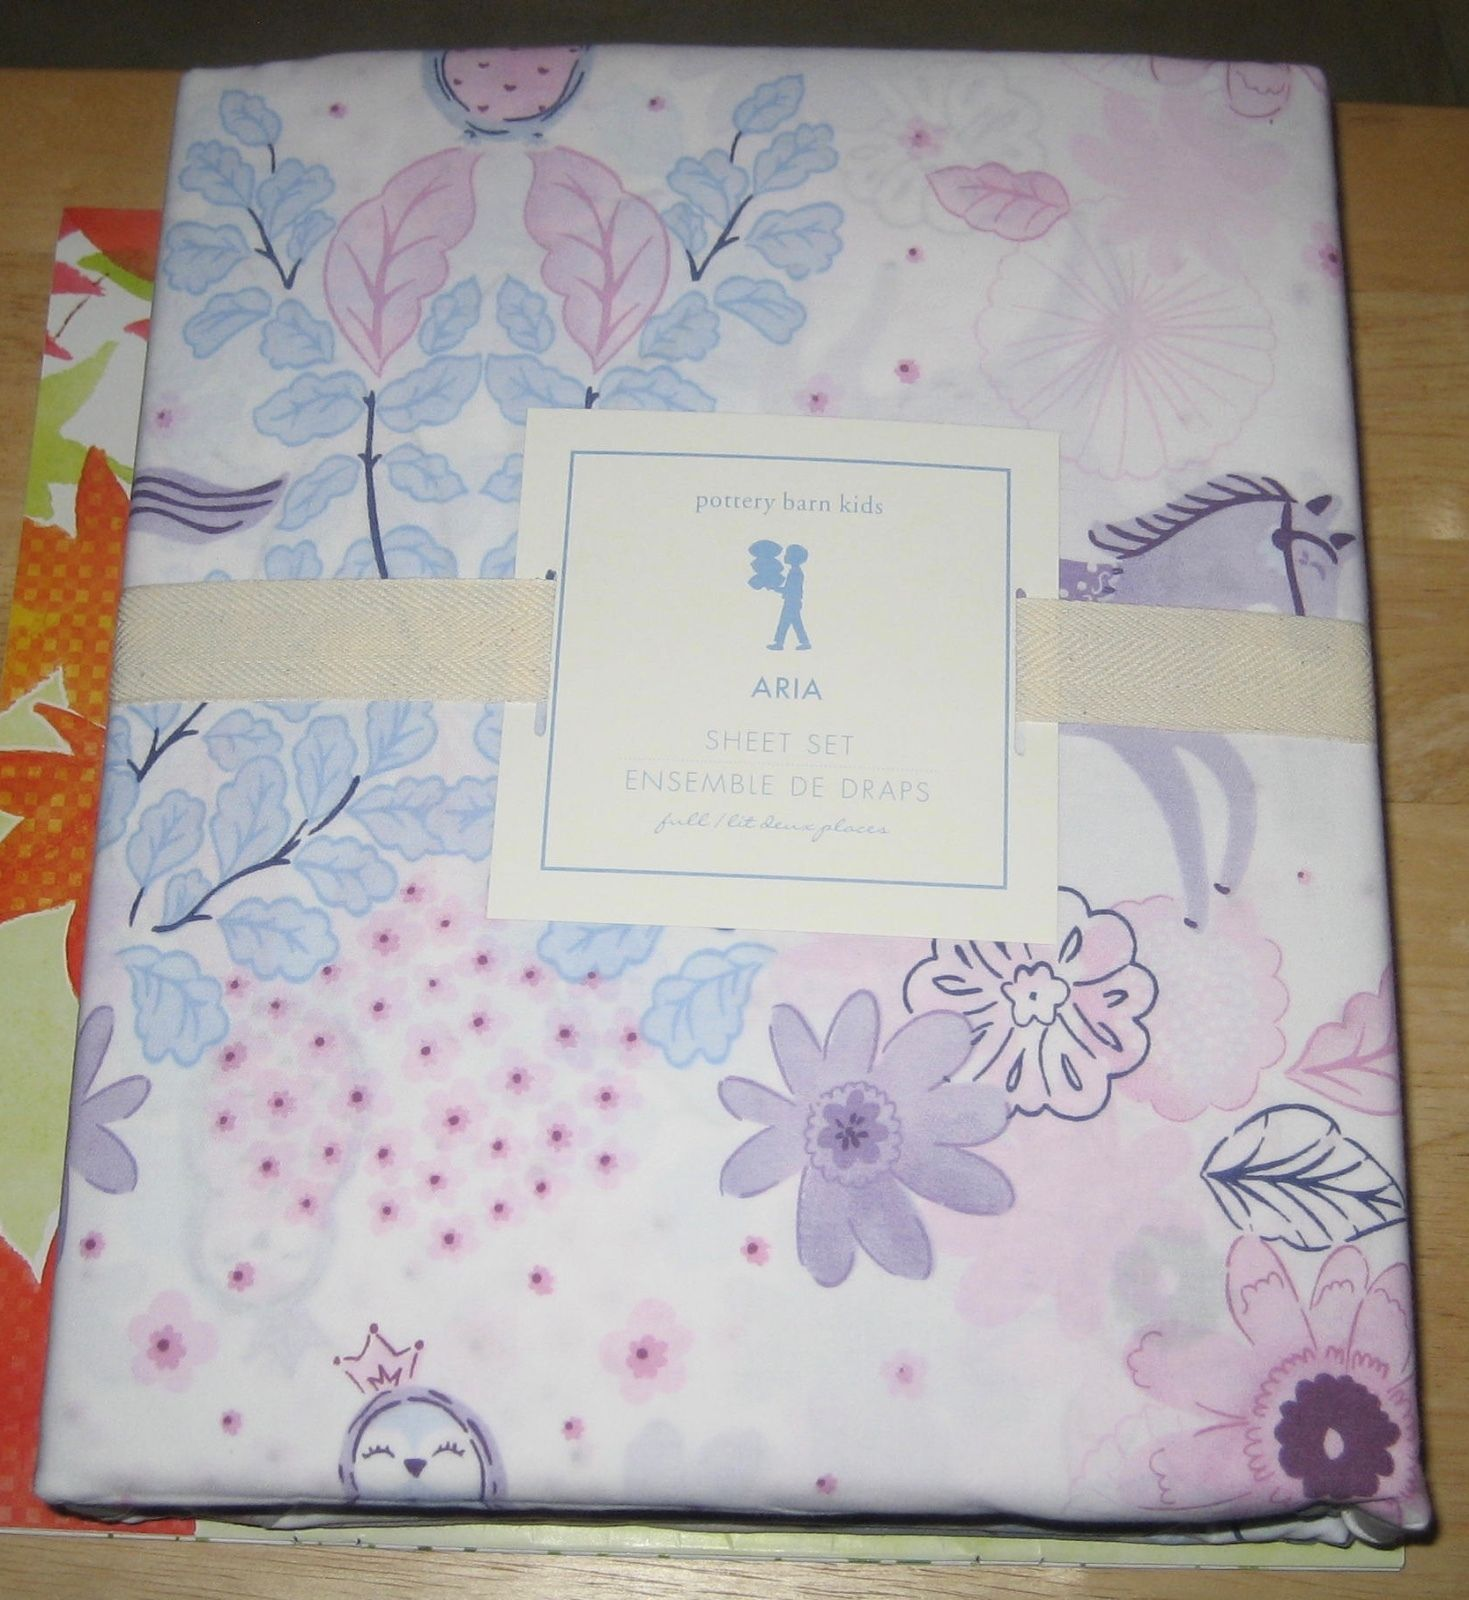 pottery barn kids aria sheet set full new in package. Black Bedroom Furniture Sets. Home Design Ideas